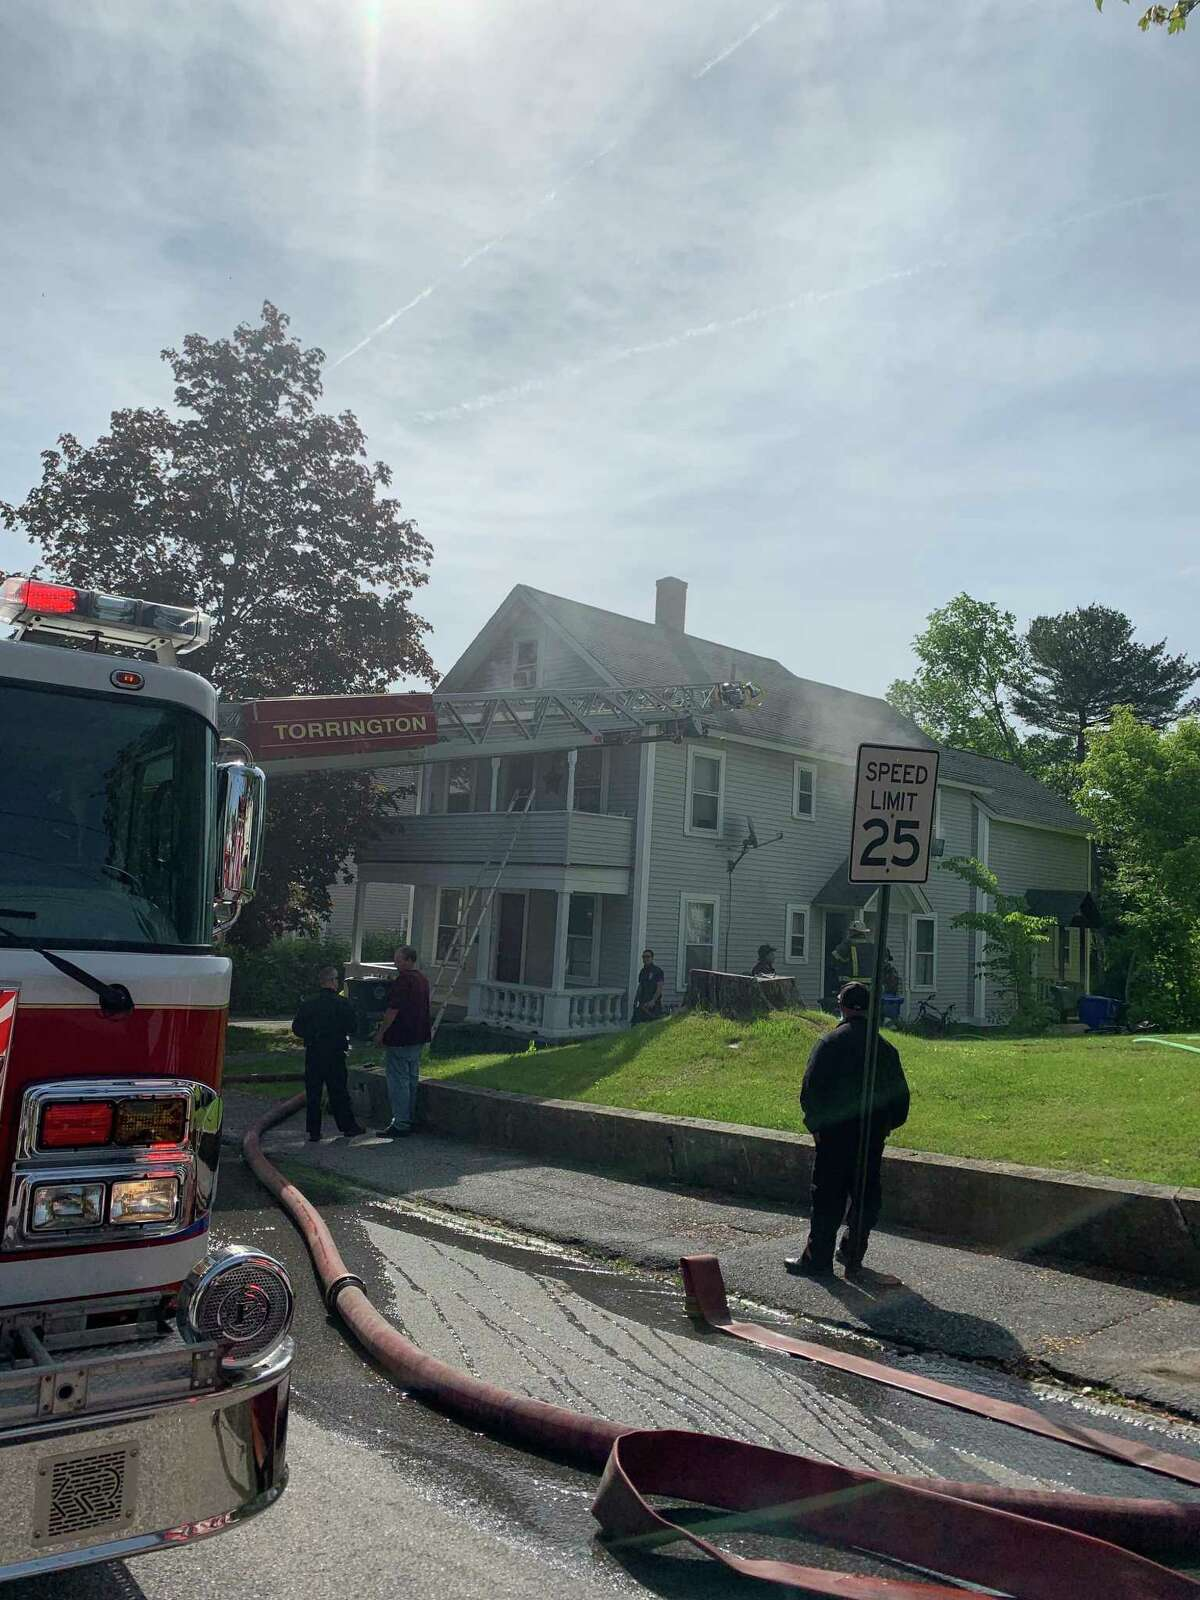 Torrington firefighters responded to a fire at a house on Hoffman Street Wednesday morning.